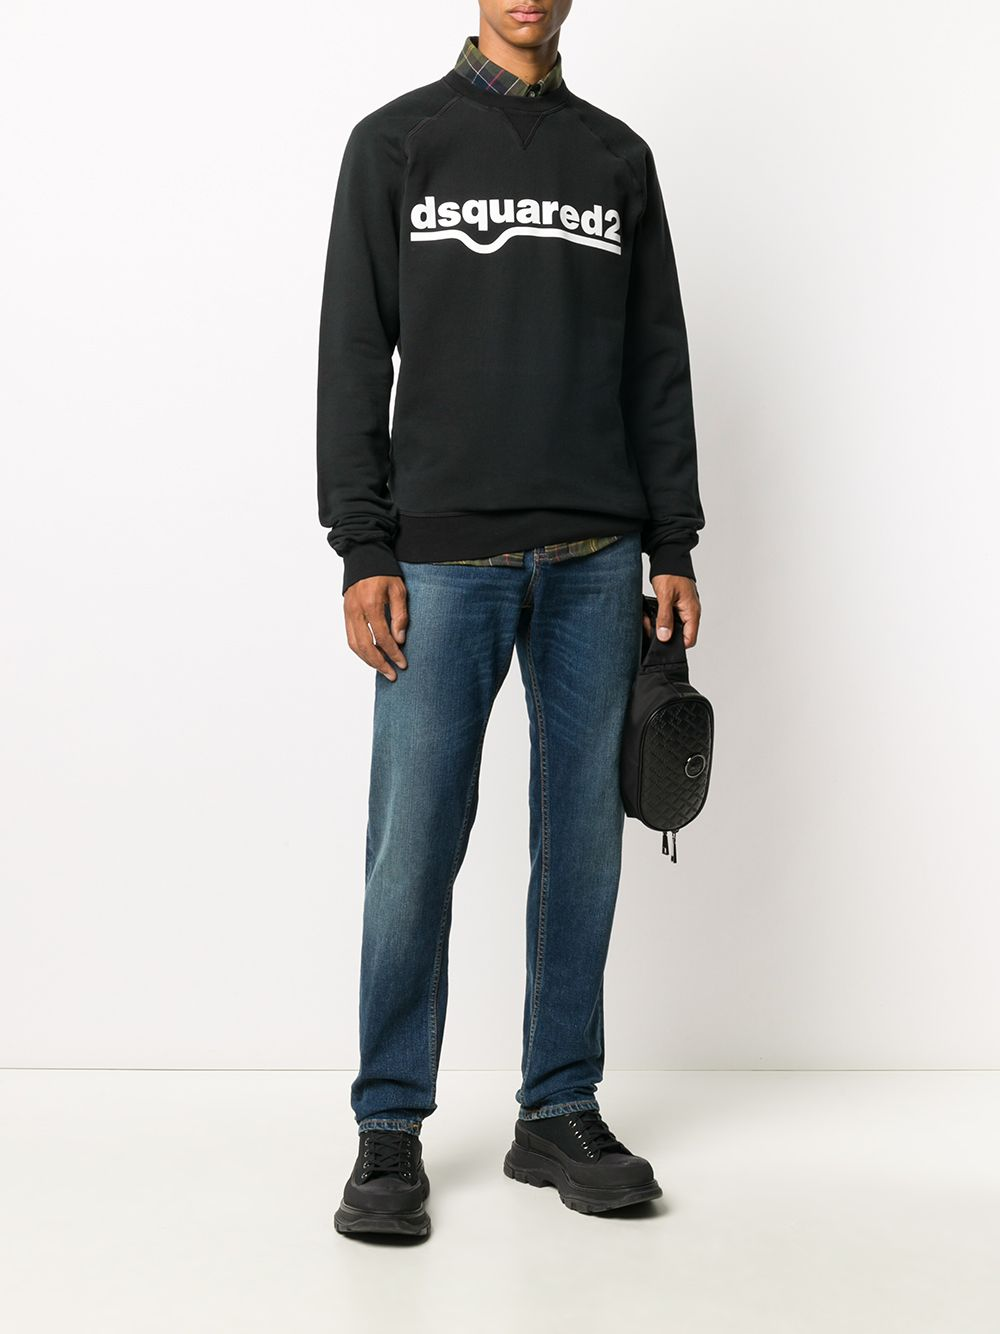 DSQUARED2 Logo Cotton Sweatshirt Black